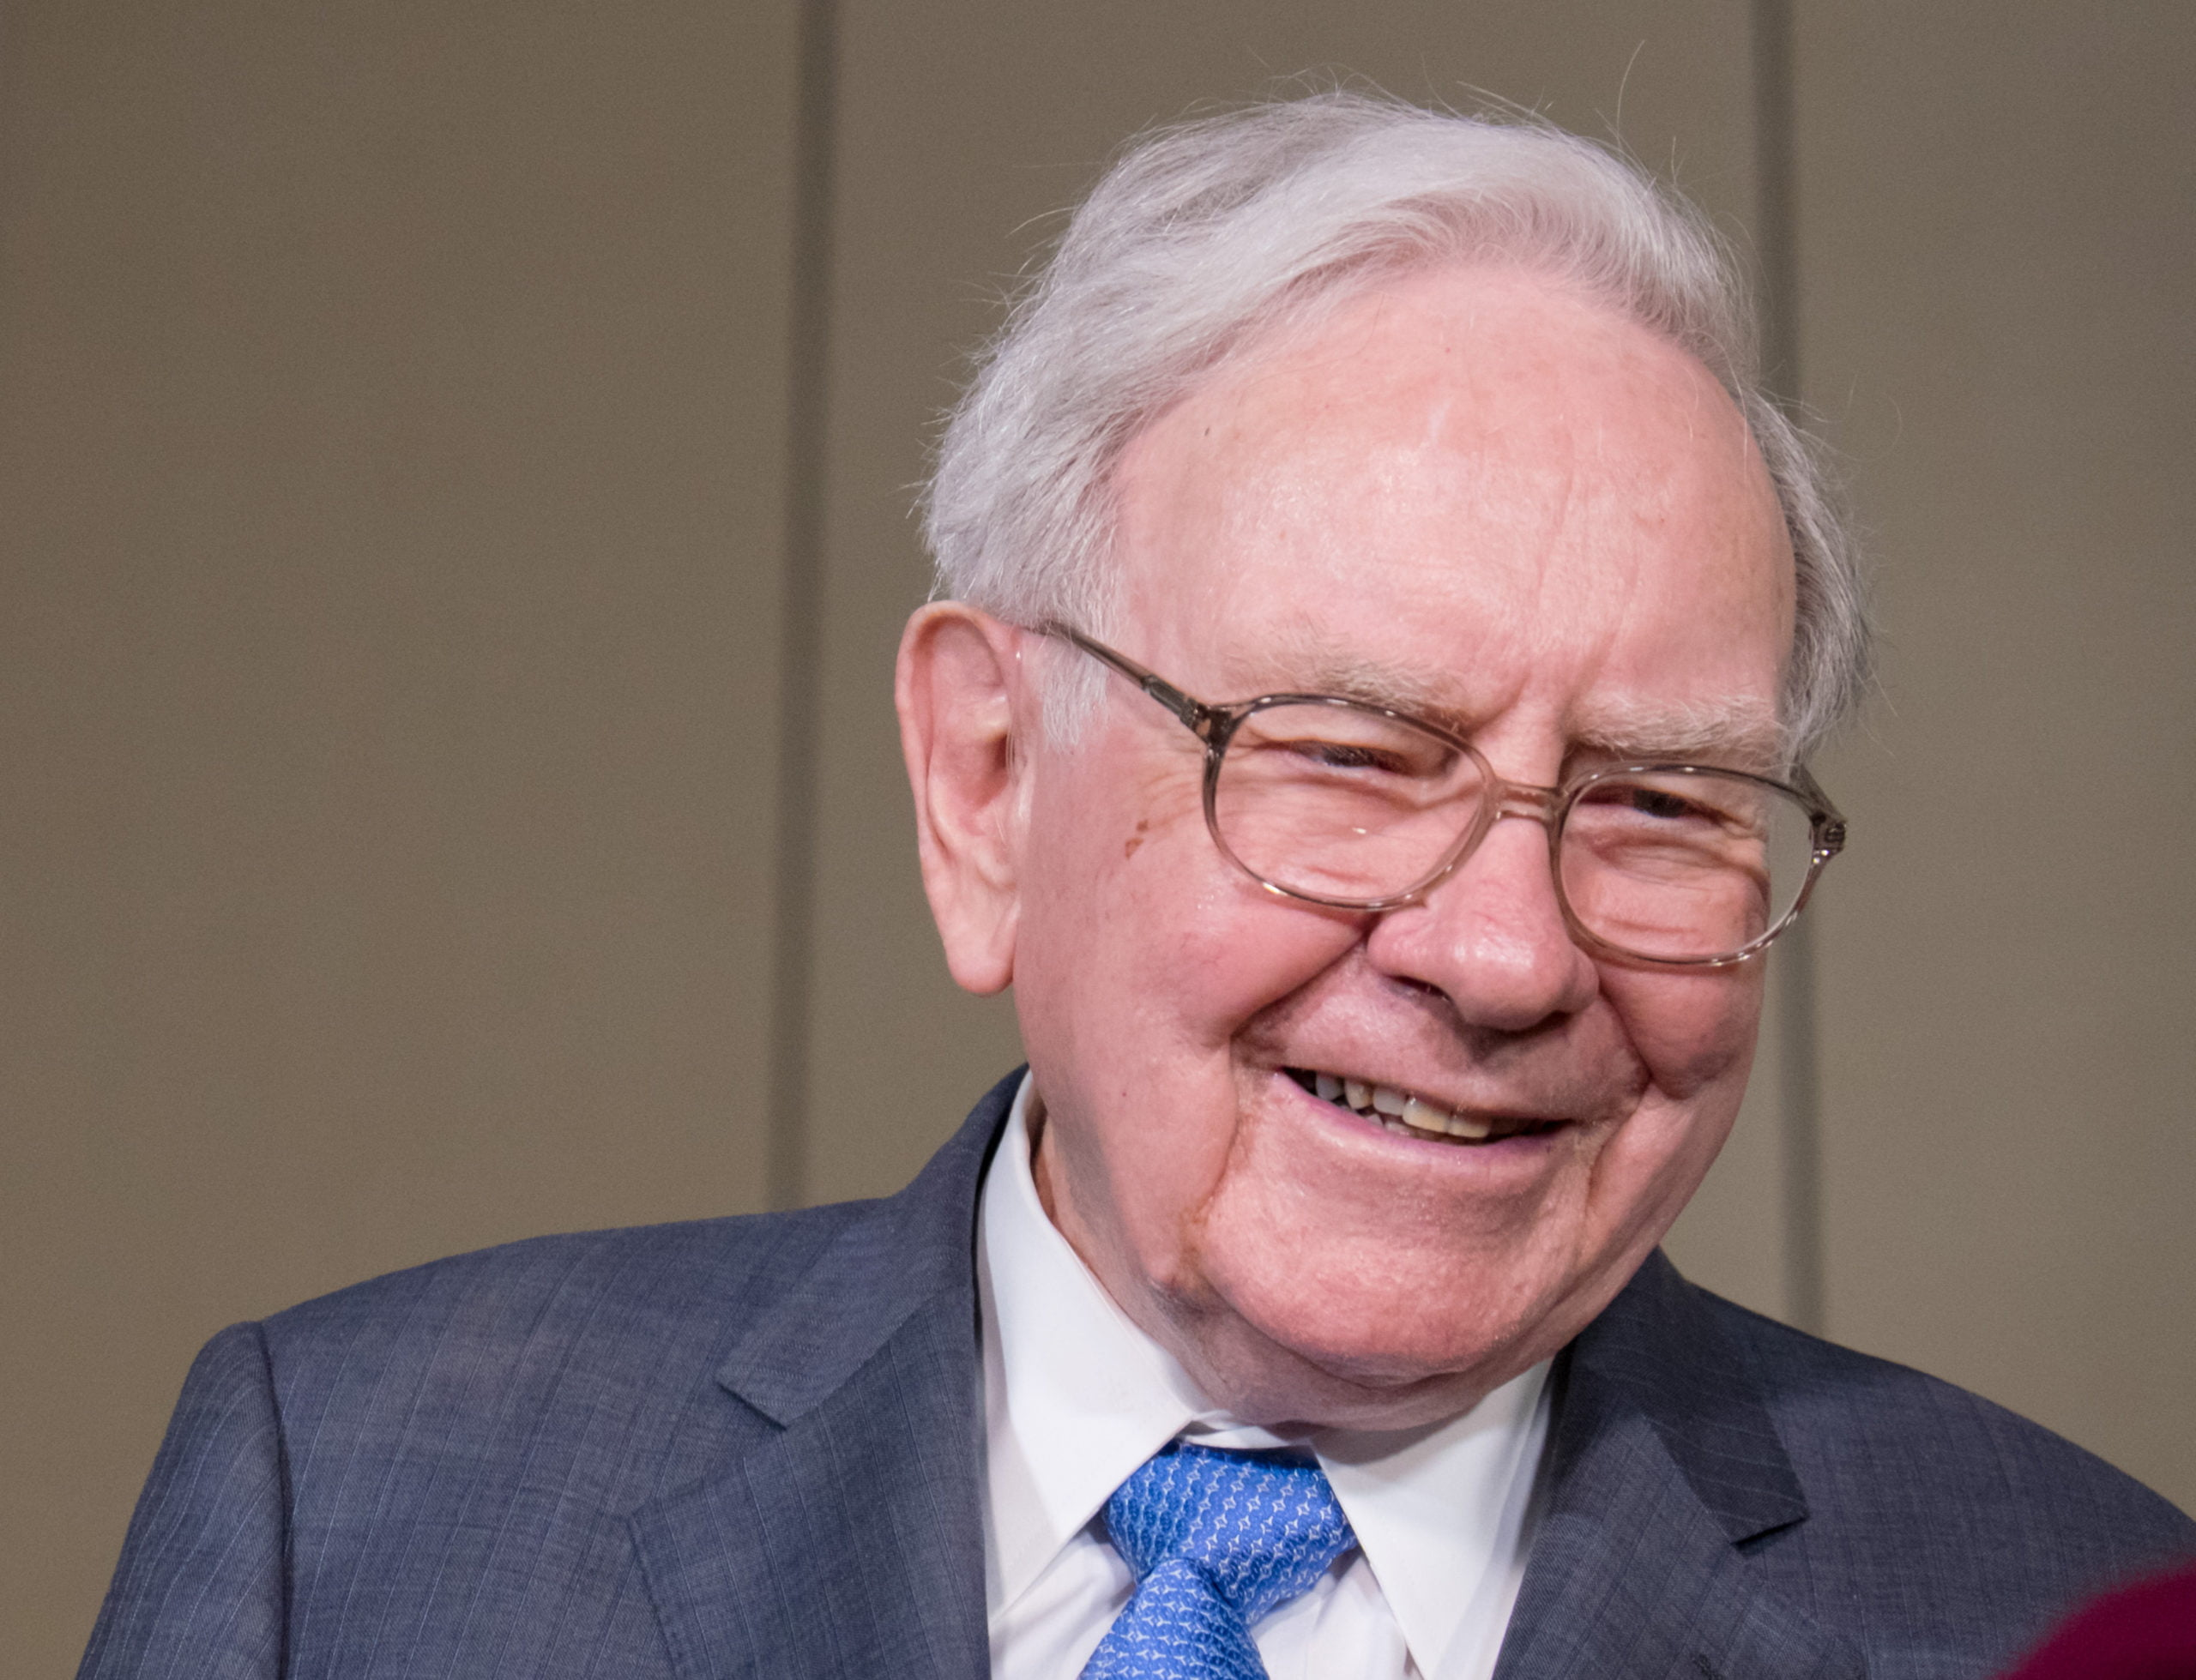 Bitcoin is a poor investment according to Warren Buffett